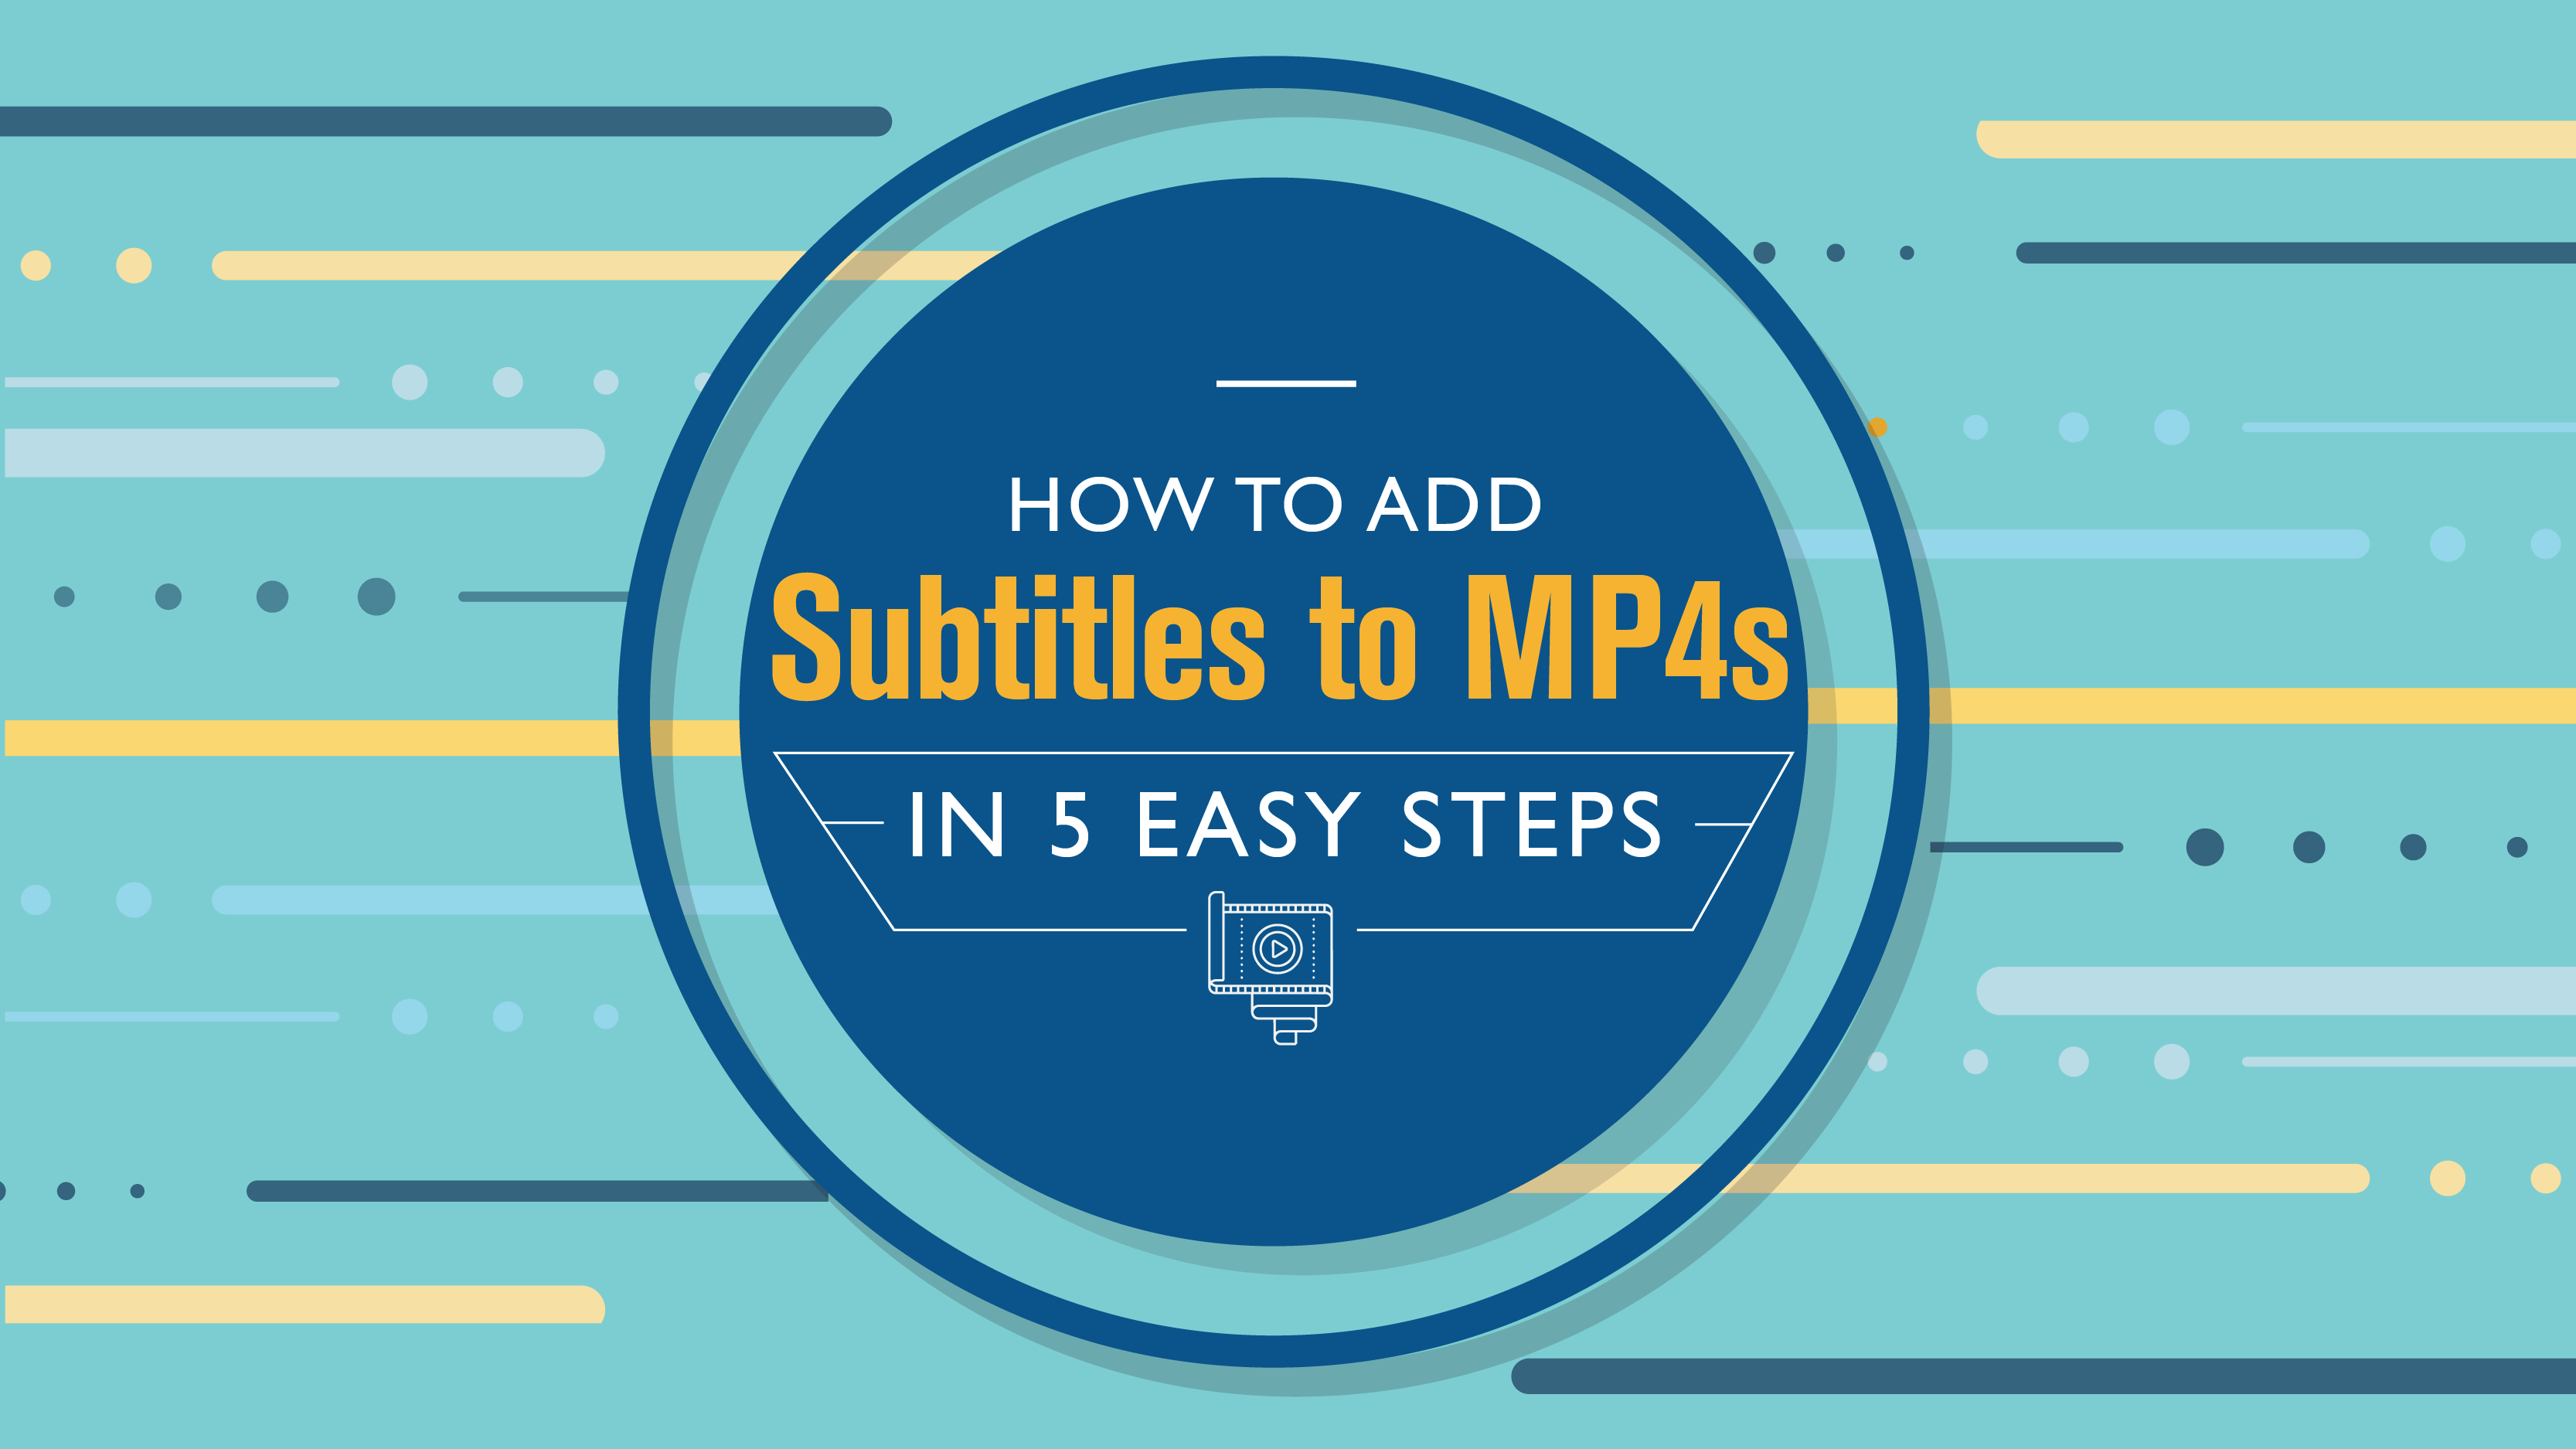 How to Add Subtitles to MP4s in 5 Easy Steps (Video) | Uscreen